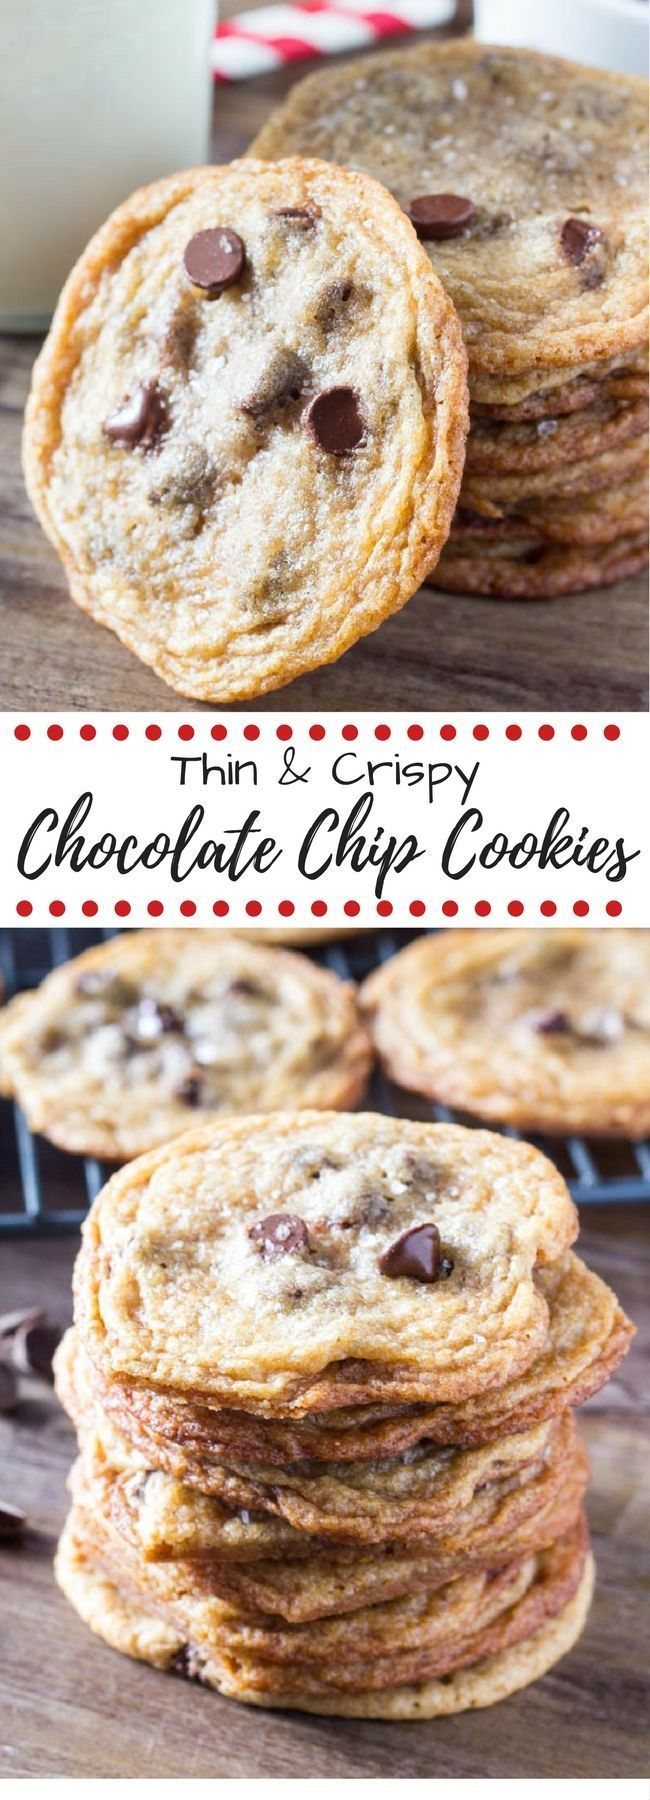 These thin and crispy chocolate chip cookies have a delicious caramel flavor and golden edges. So addictive & perfect for cookie stacking!